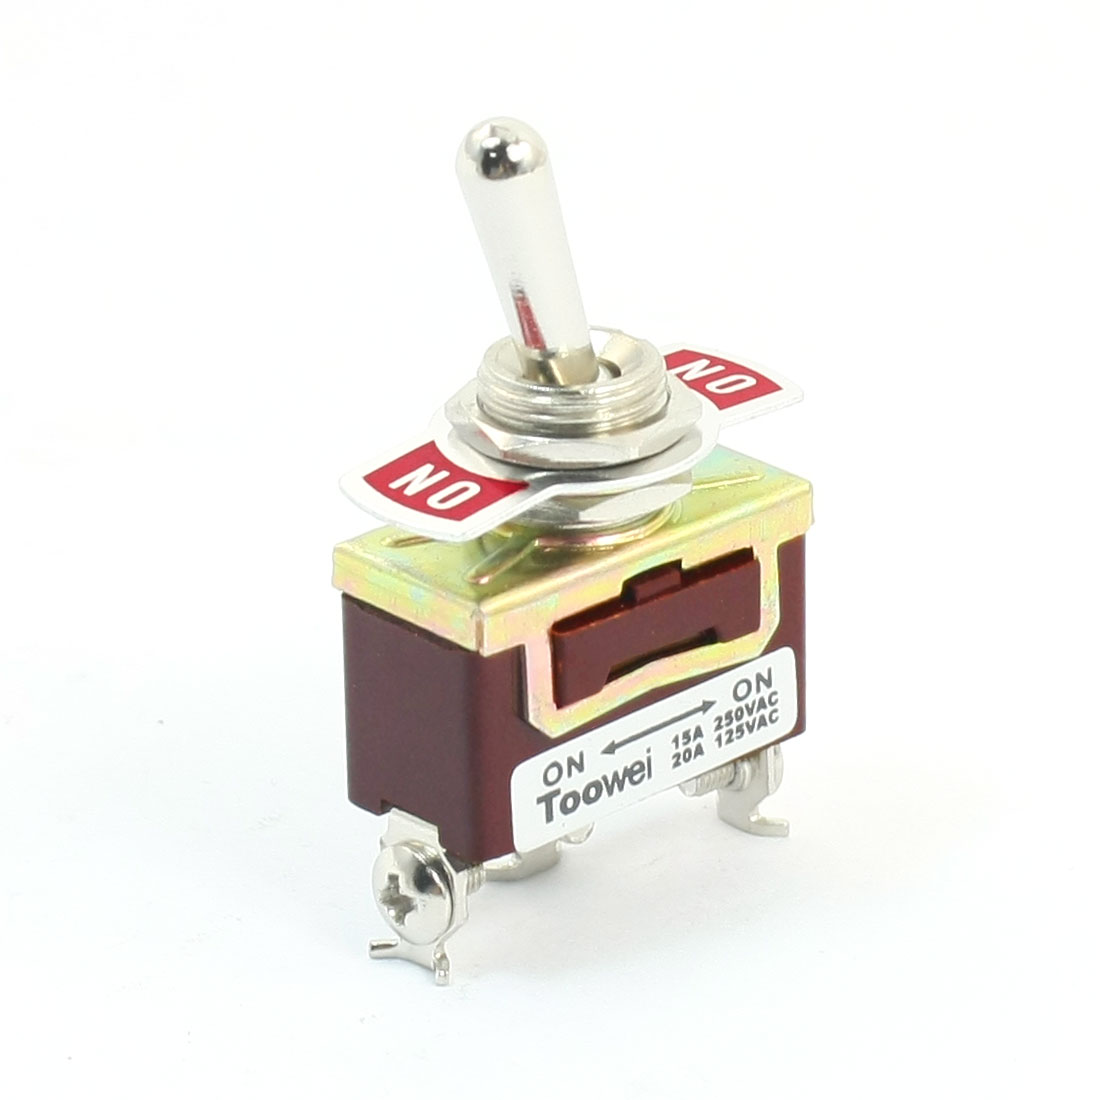 Repairing AC 250V 15A SPDT ON/ON 2 Position Latching Toggle Switch T701BW